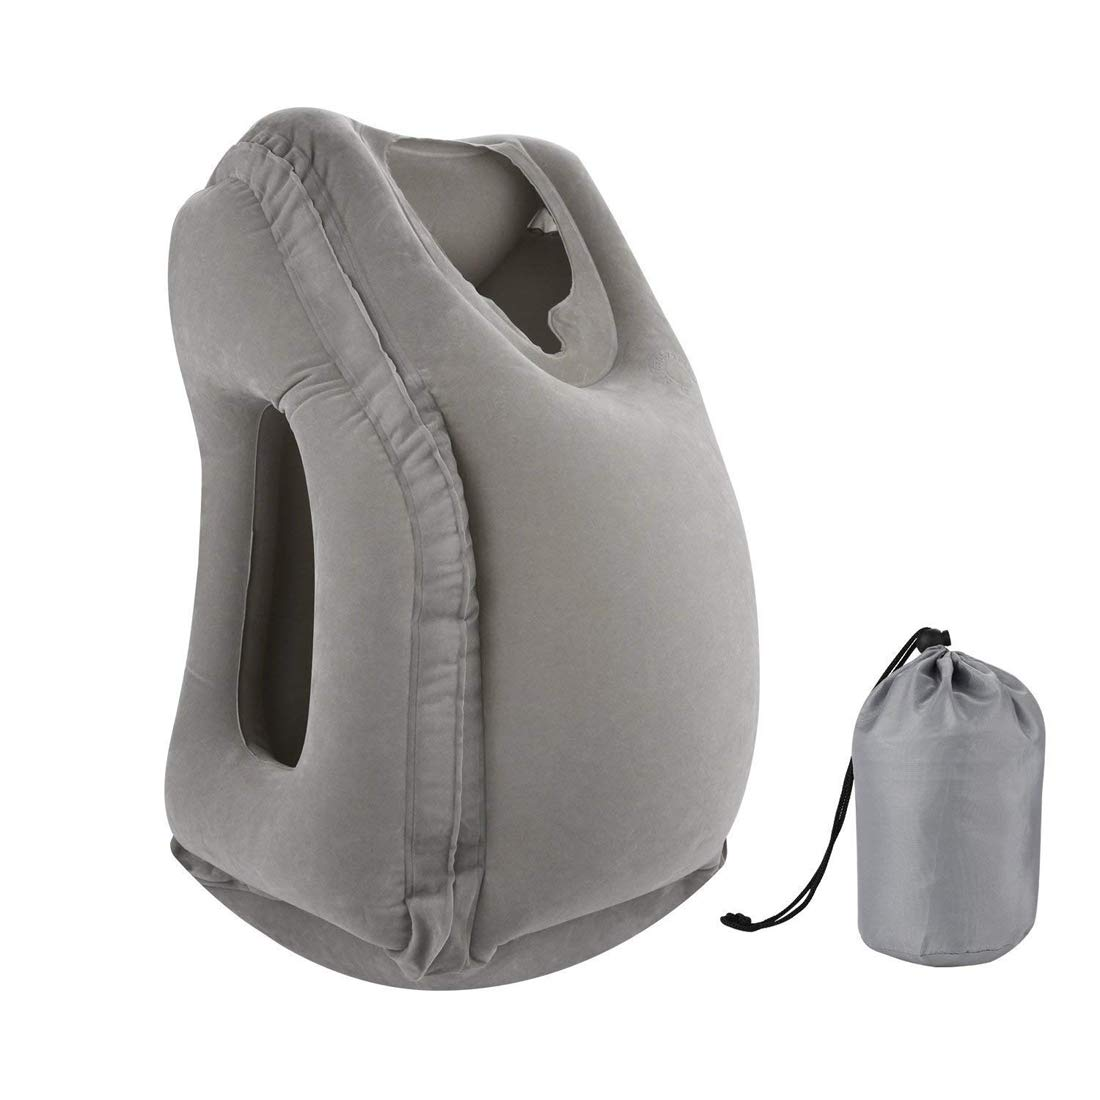 Multifunctional Inflatable Travel Pillow Large Neck Pillow with Full Body and Head Support